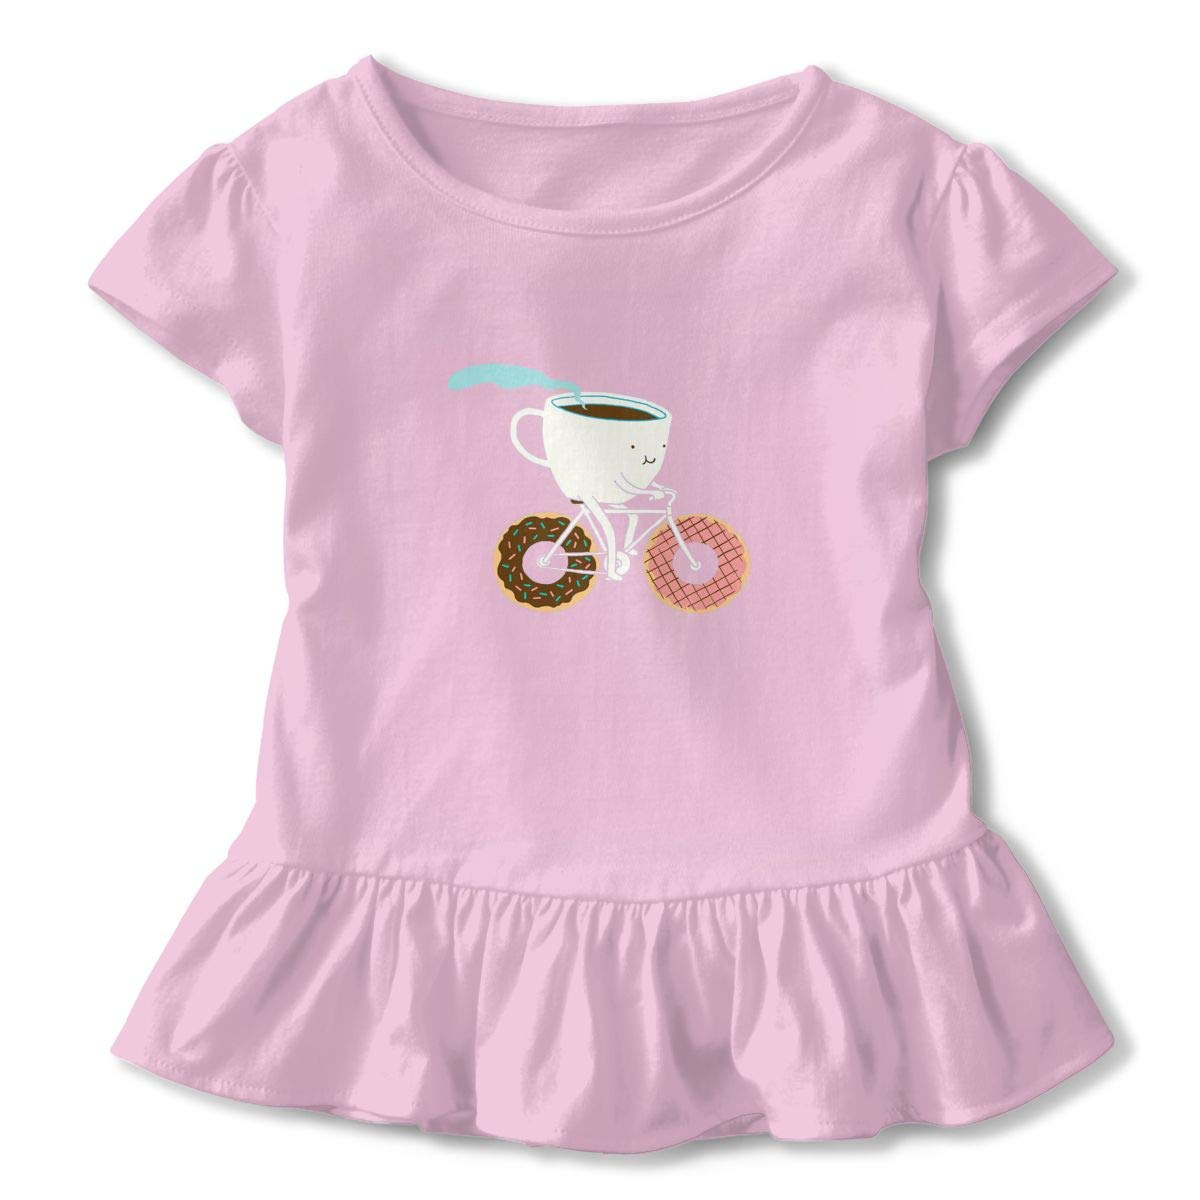 QUZtww Coffee Riding Donuts Toddler Baby Girl Basic Printed Ruffle Short Sleeve Cotton T Shirts Tops Tee Clothes